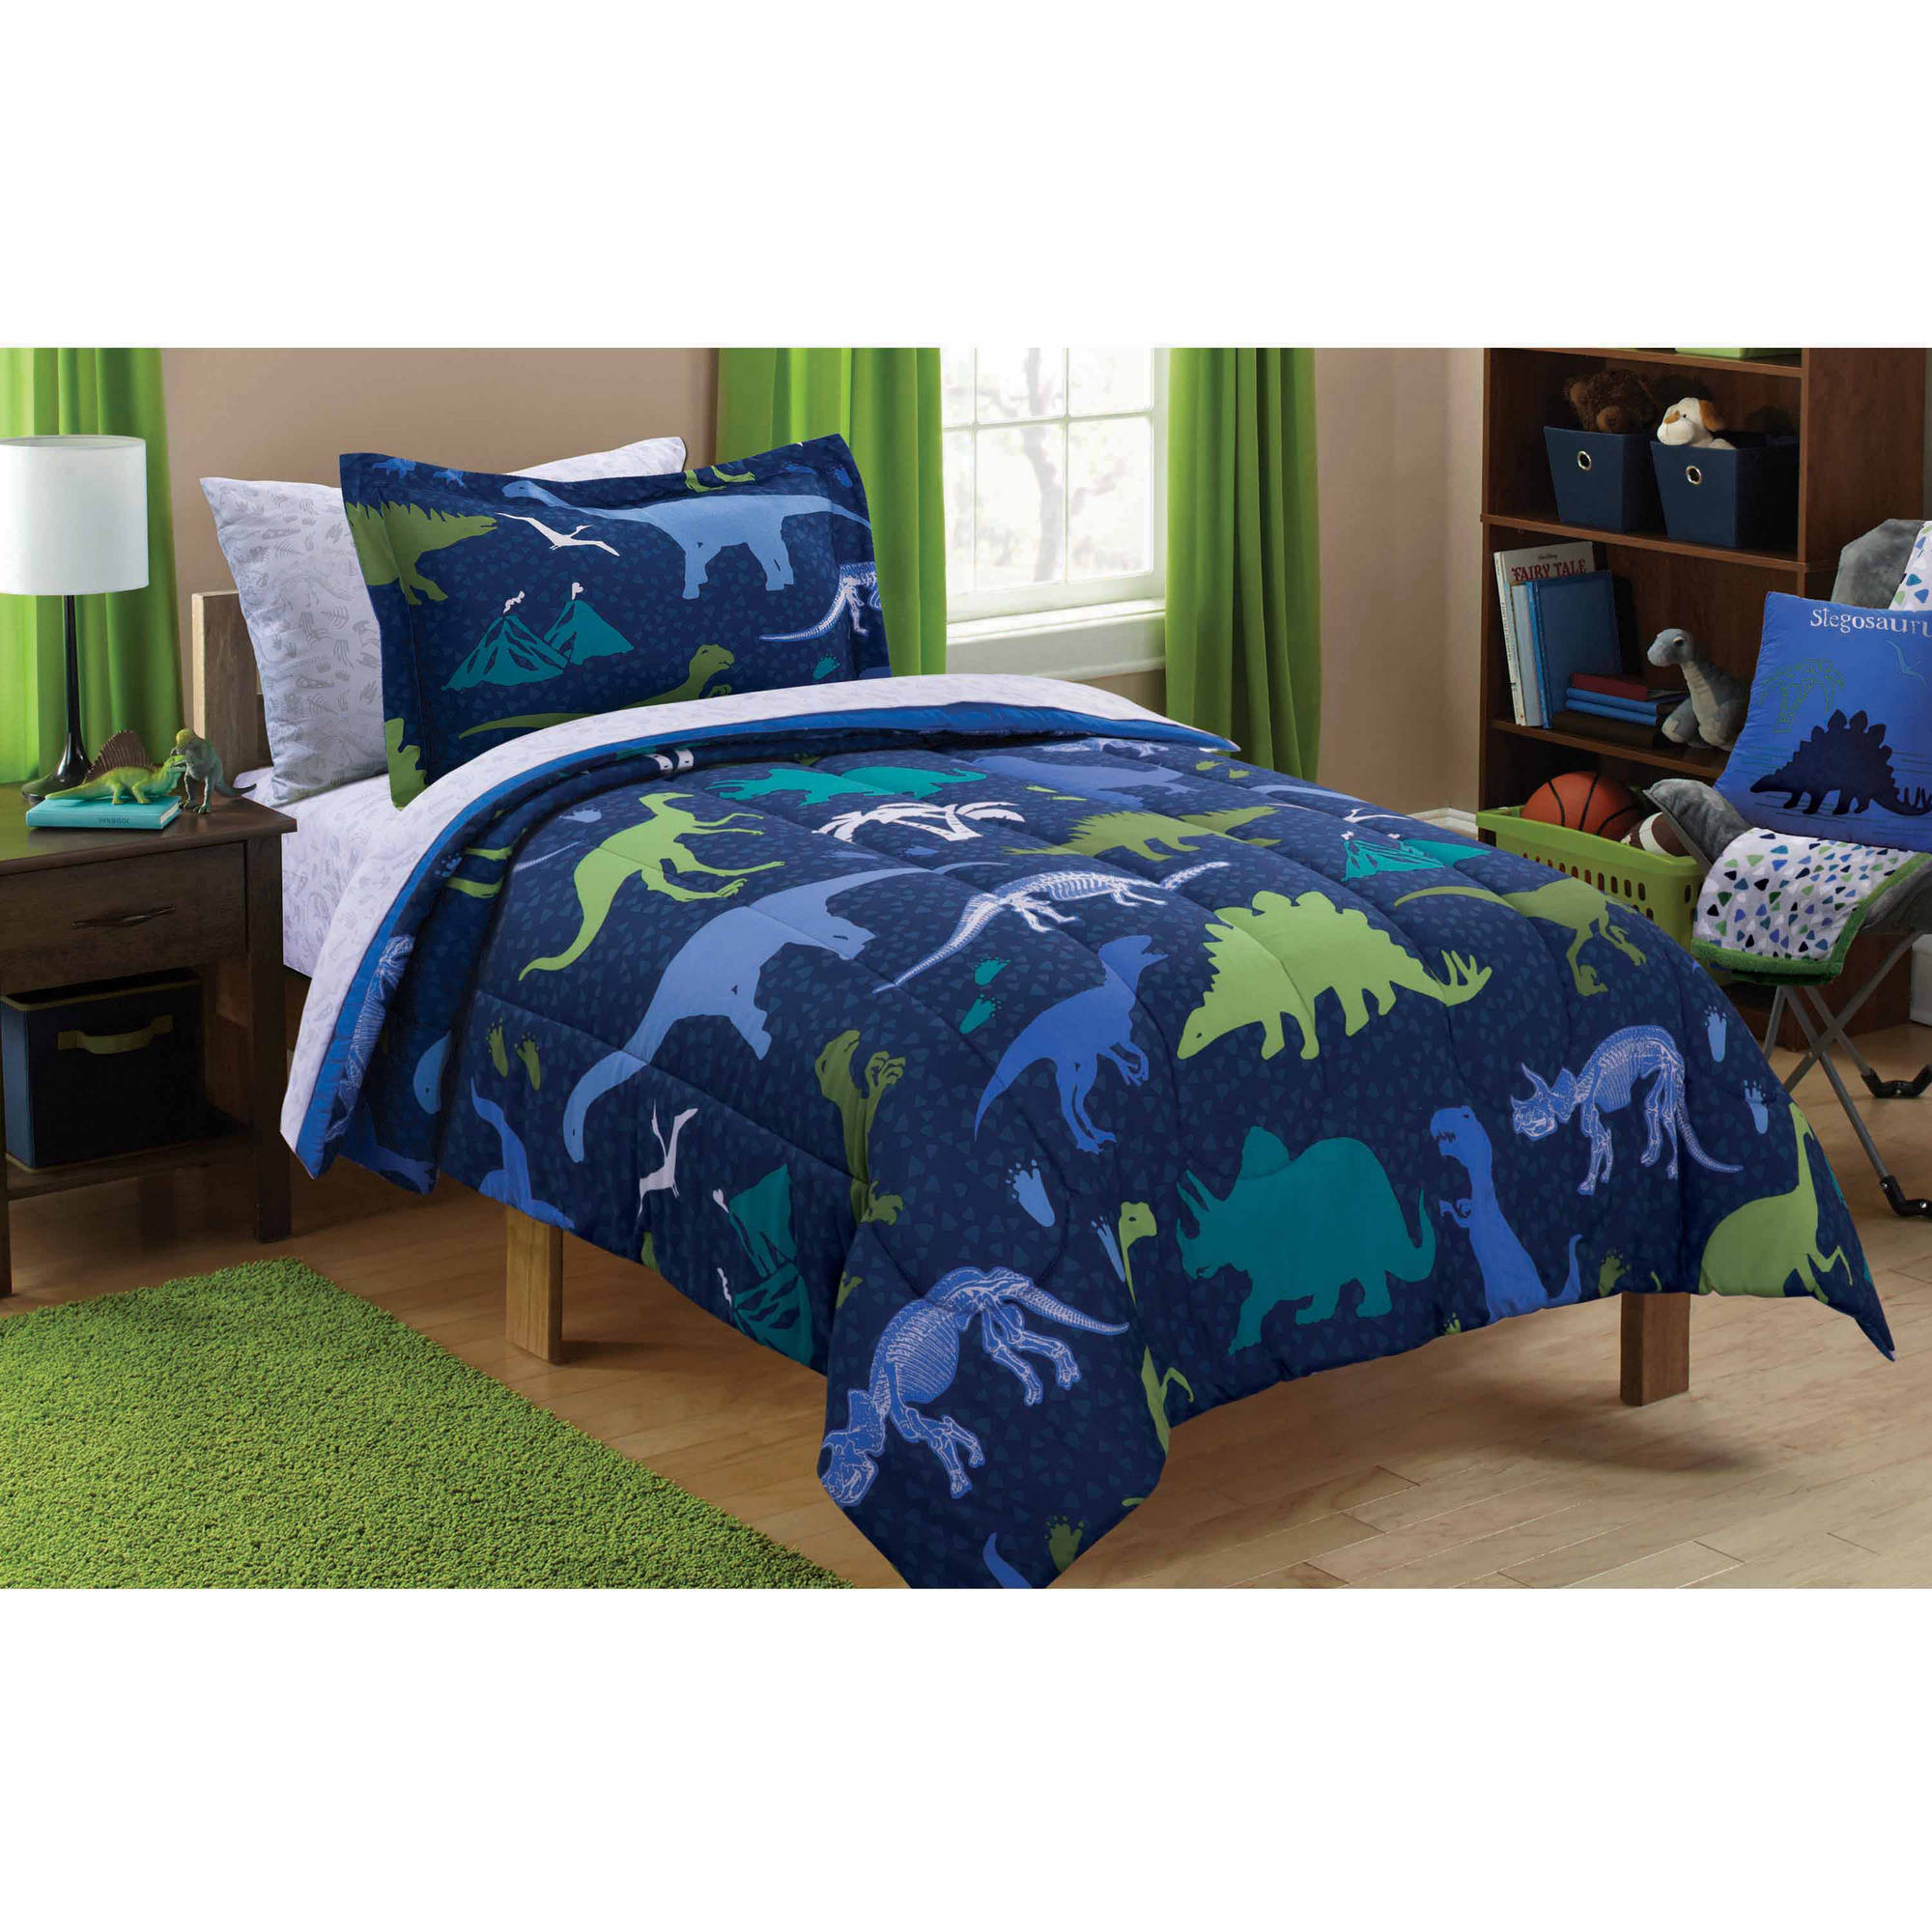 Full size childrens bedding sets - Mainstays Kids Dino Roam Bed In A Bag Bedding Set